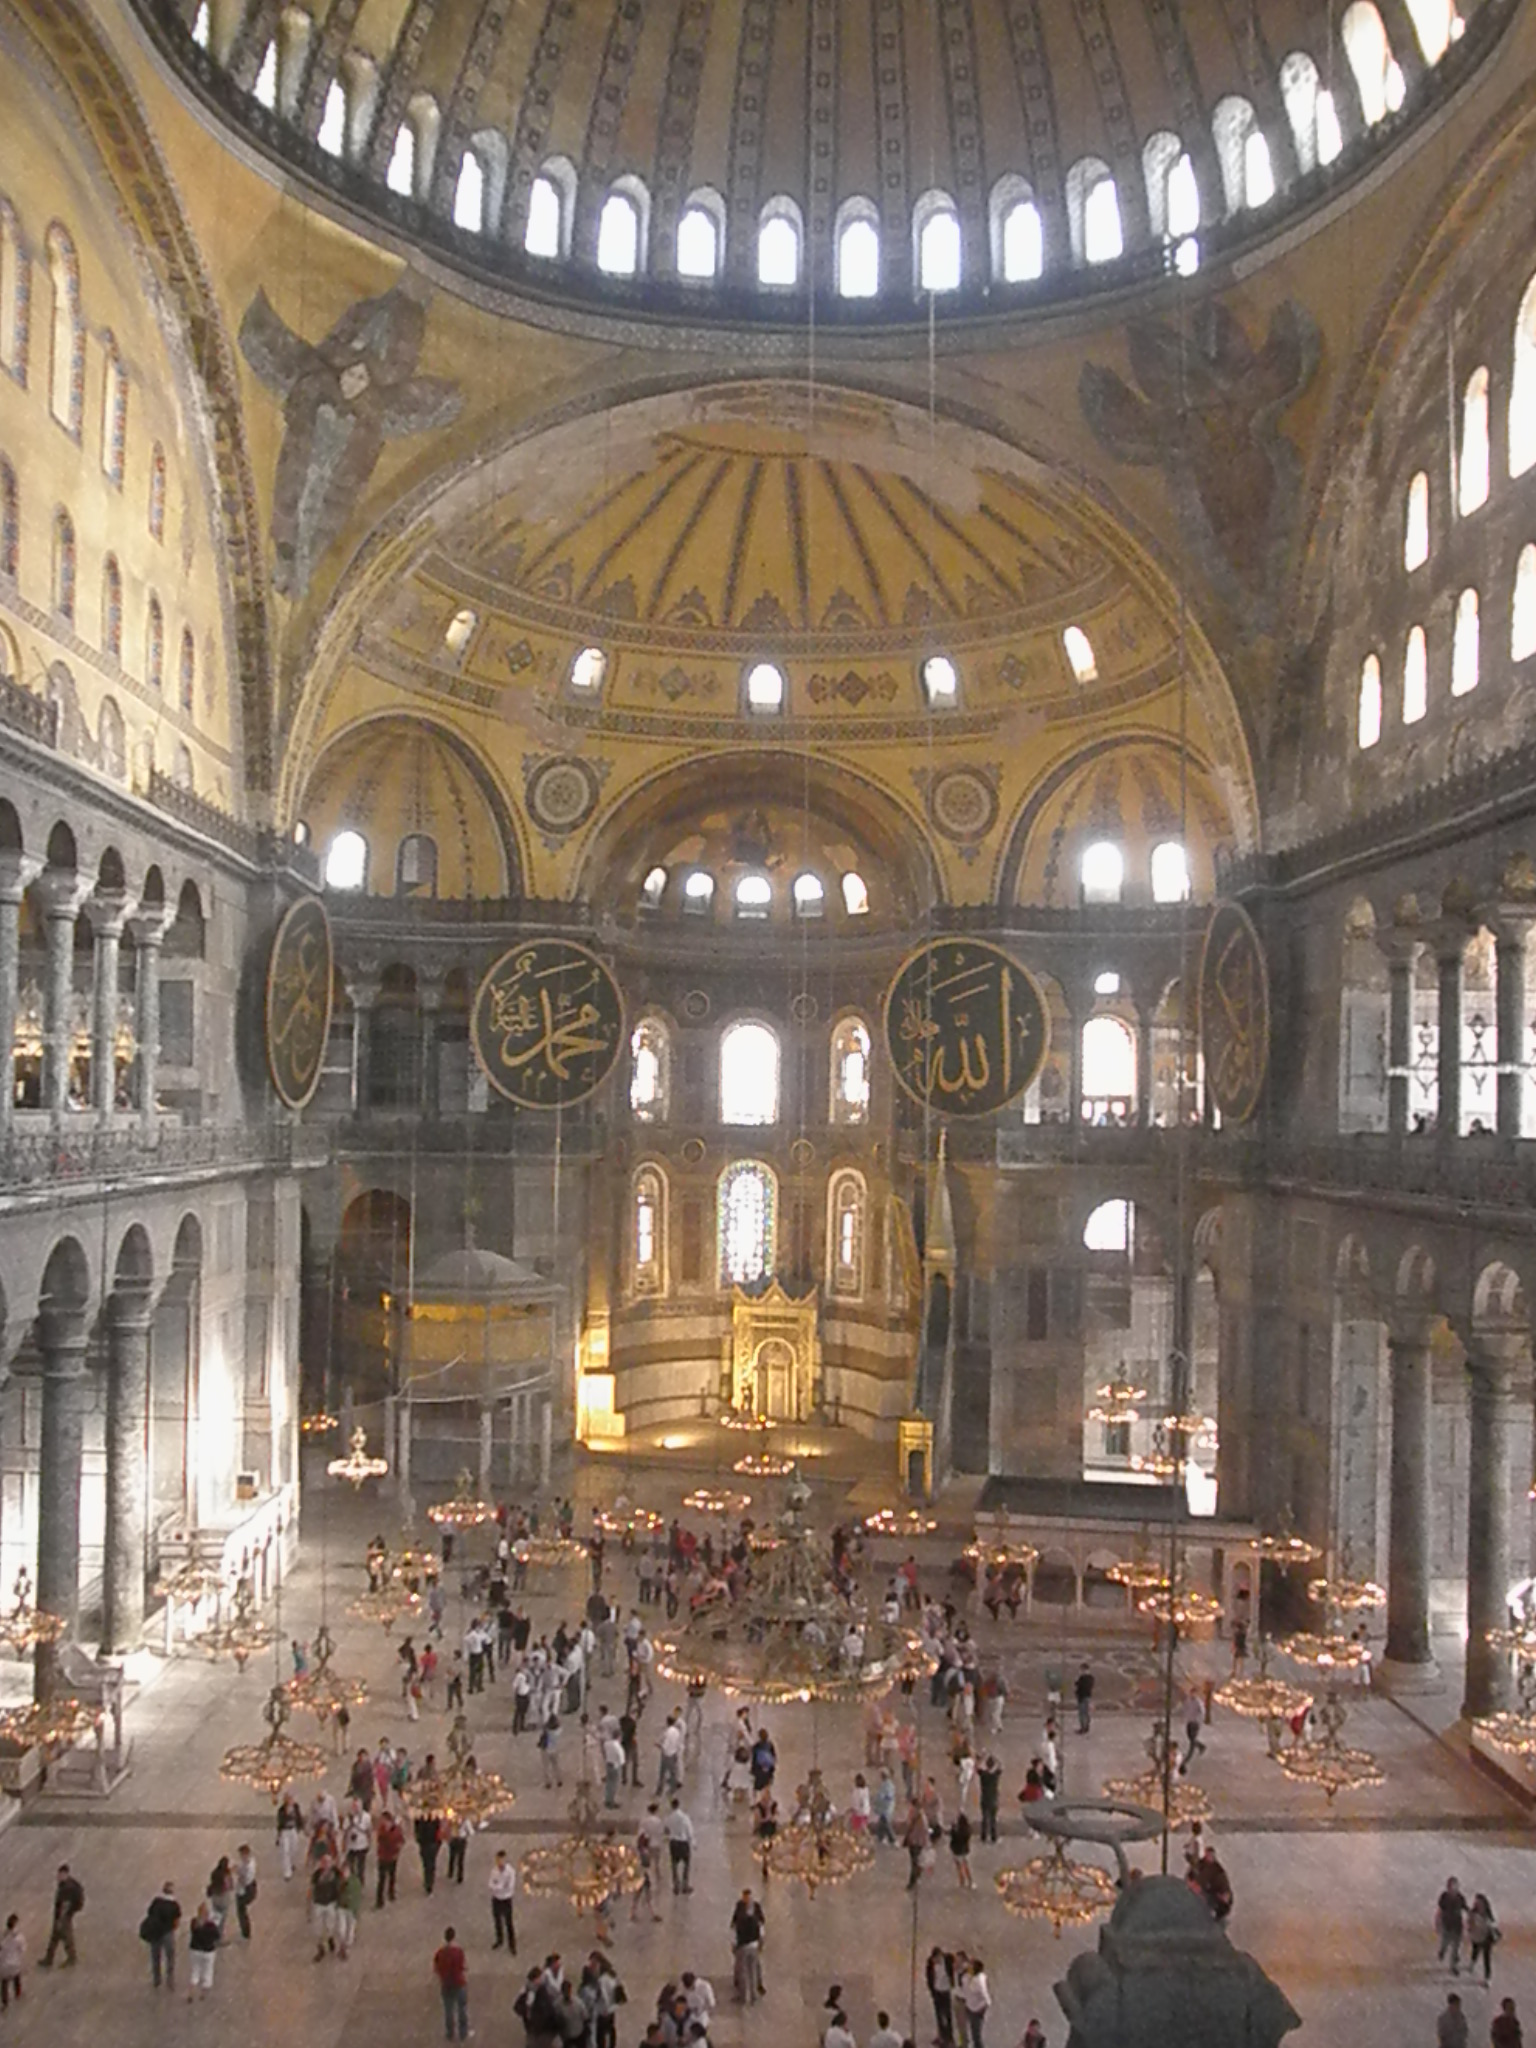 Untours staffer Andi Cancelliere takes a moment to appreciate the Hagia Sophia during her research trip to Istanbul